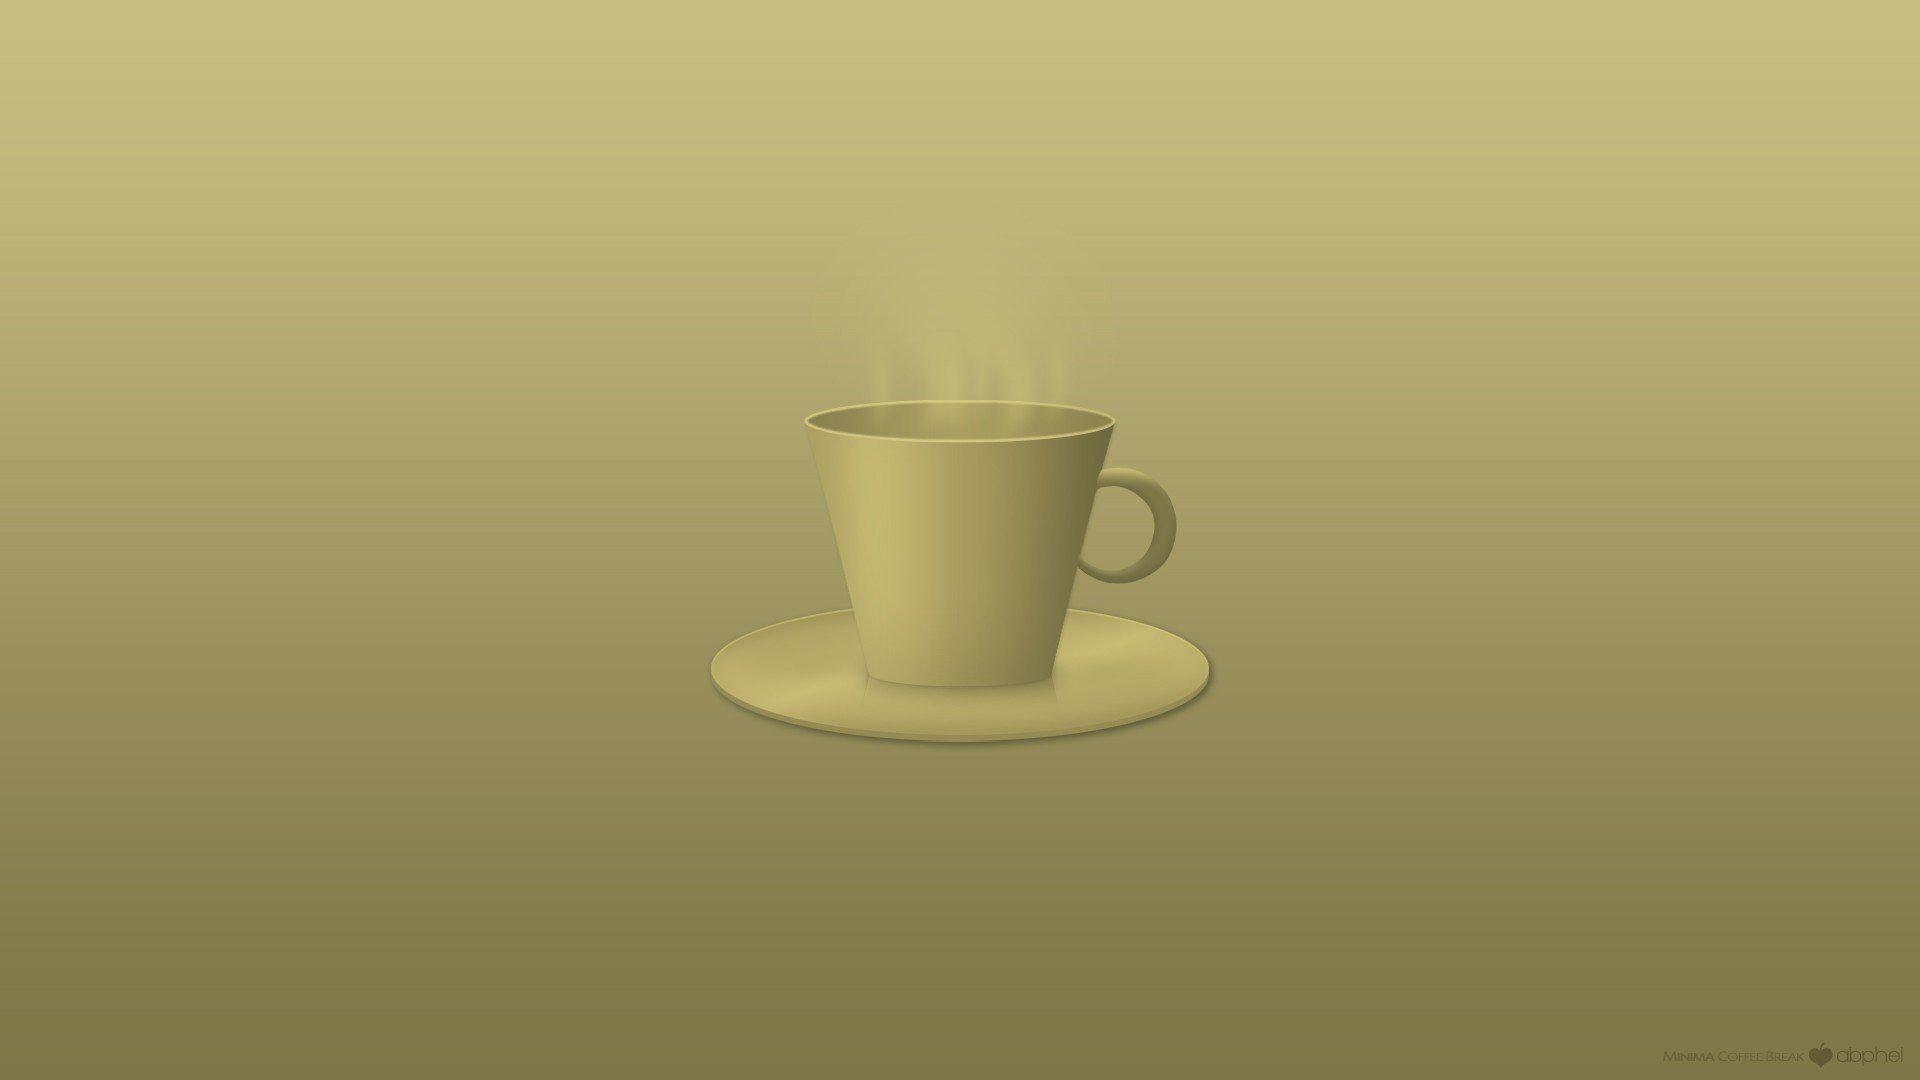 Minimalist Desktop Coffee Wallpaper